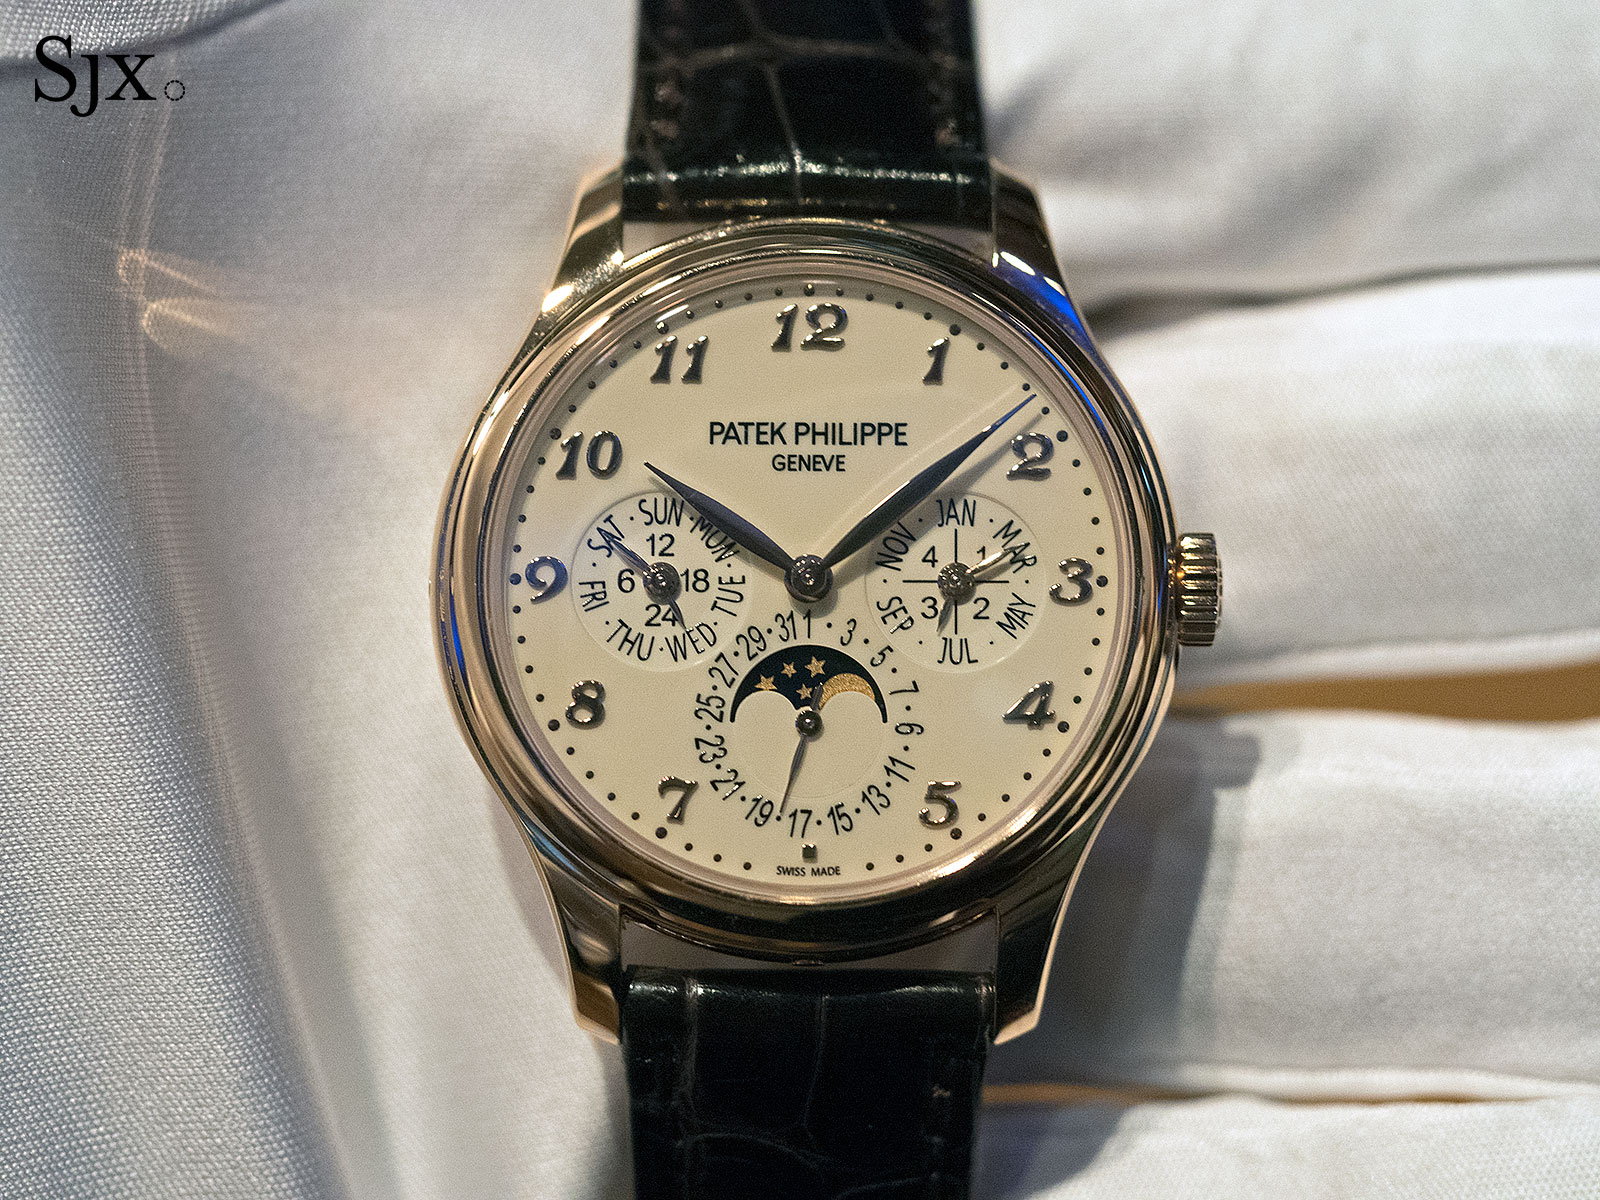 Perpetual Calendar Patek : Measuring eternity three facts to know about the patek